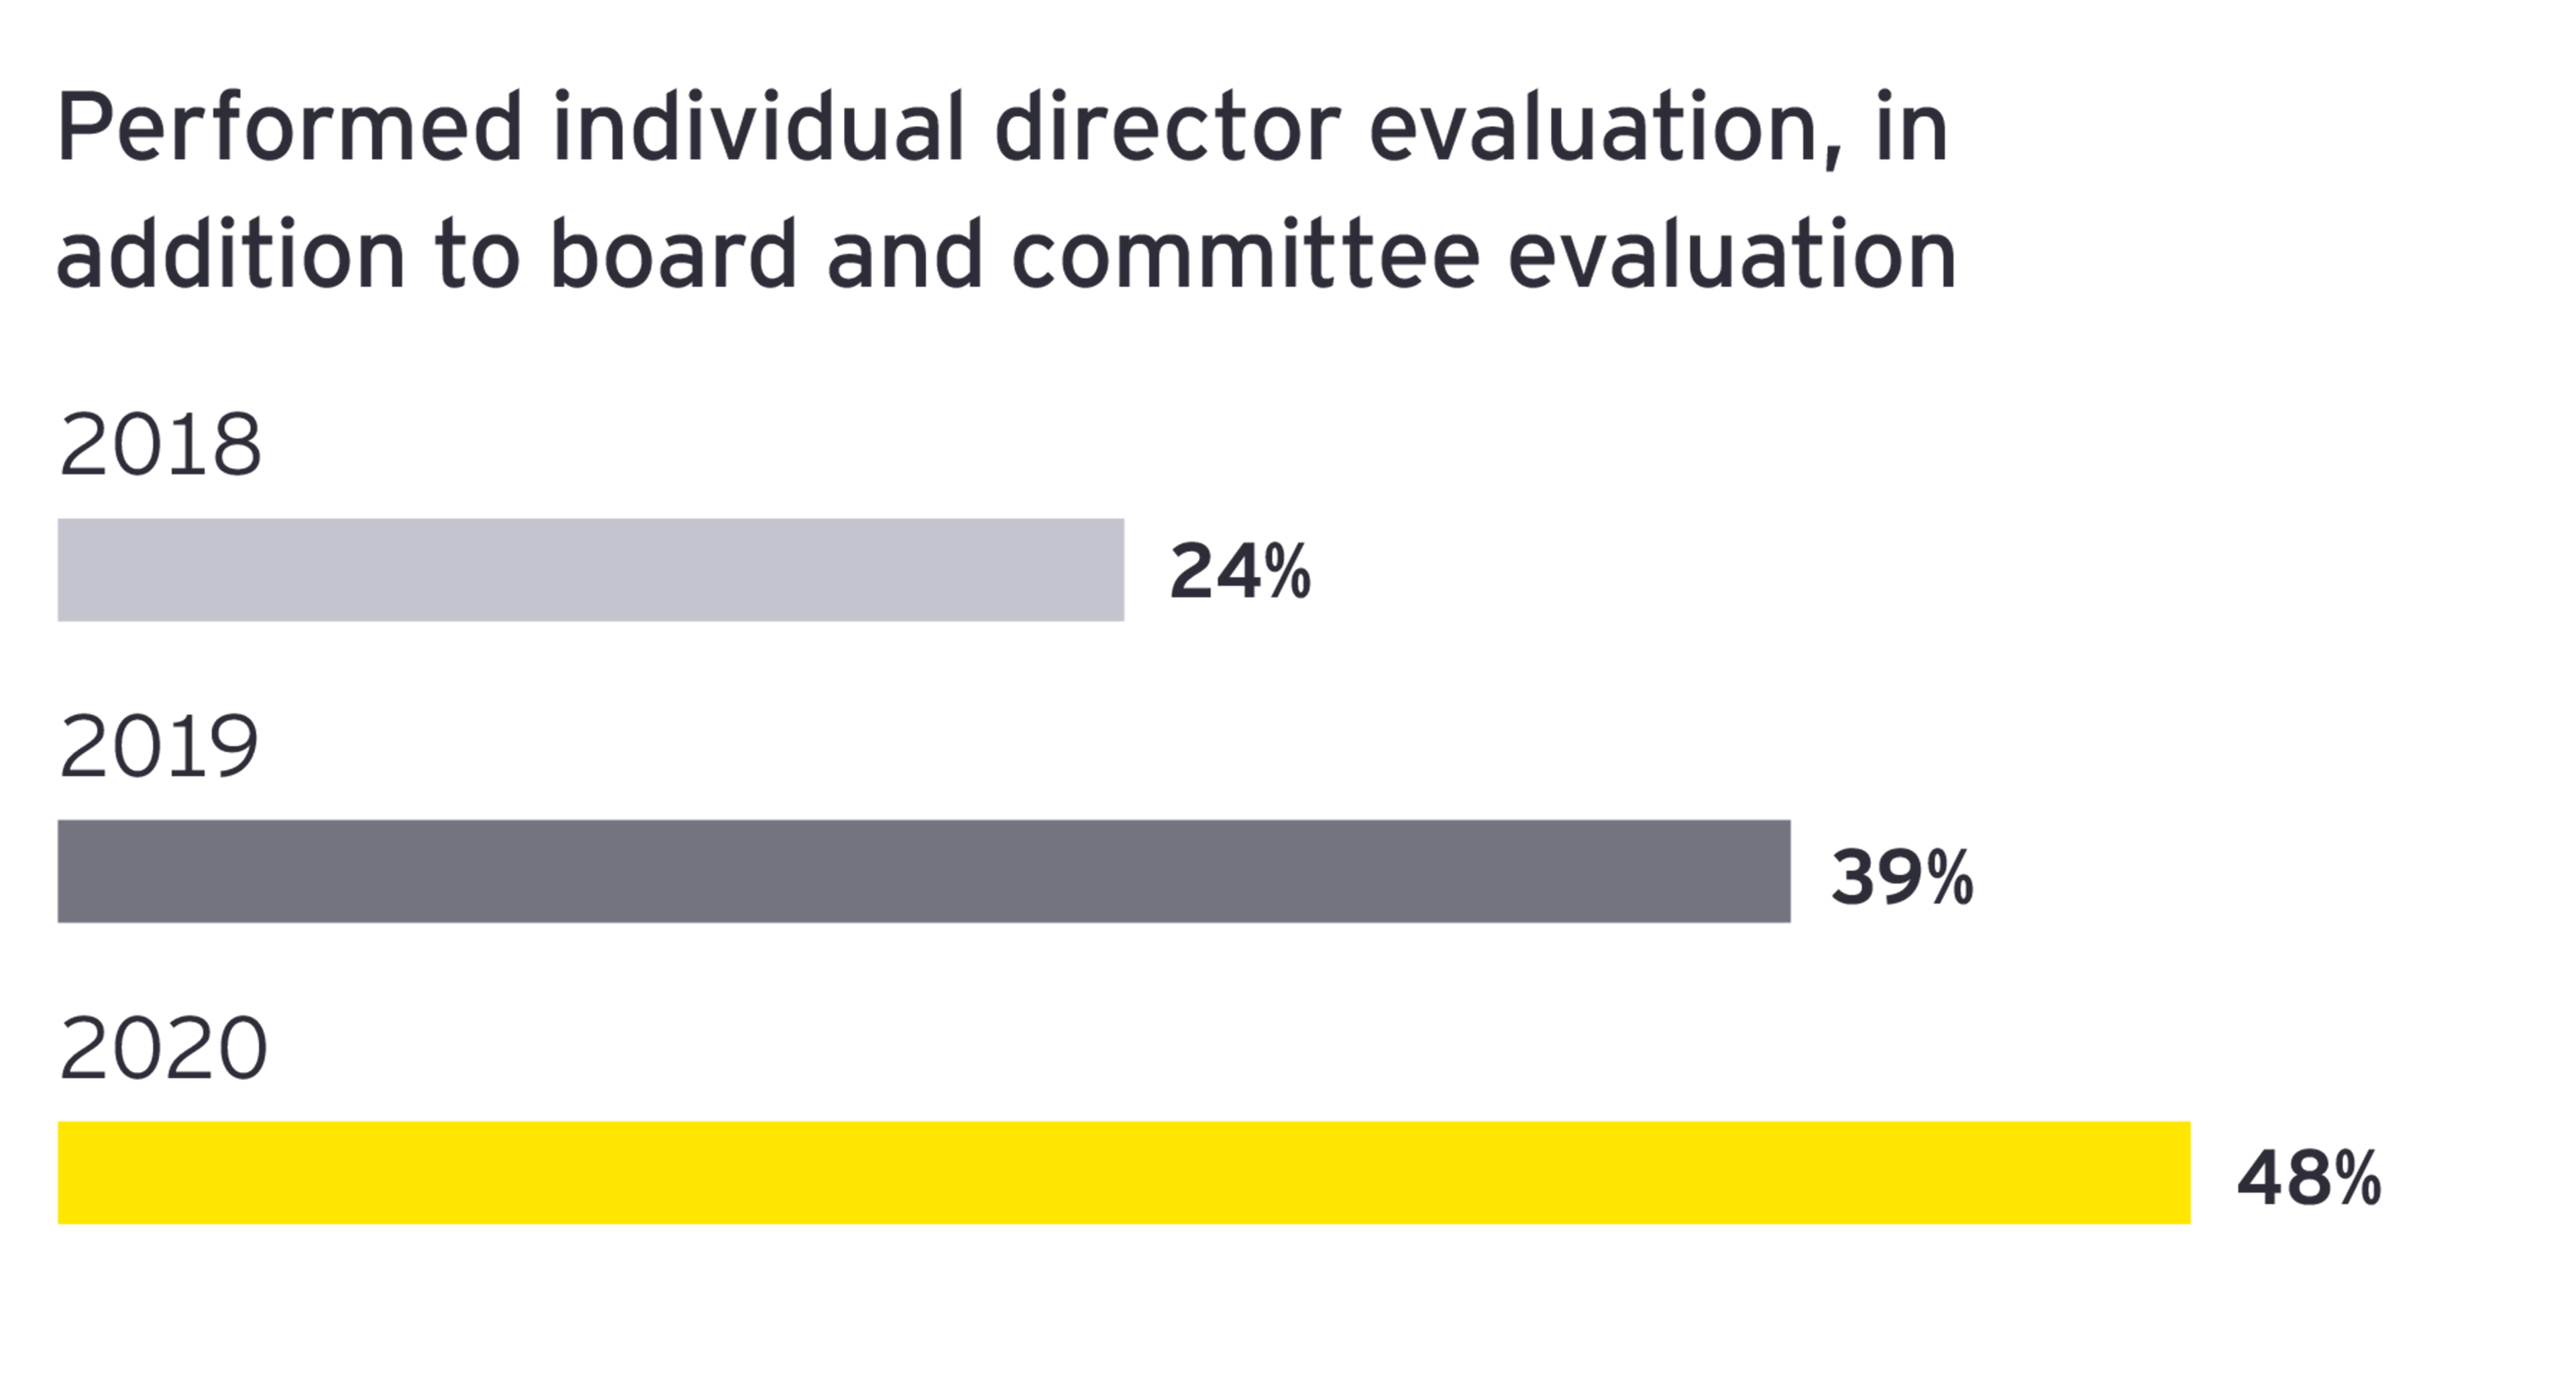 EY - Performed individual director evaluation